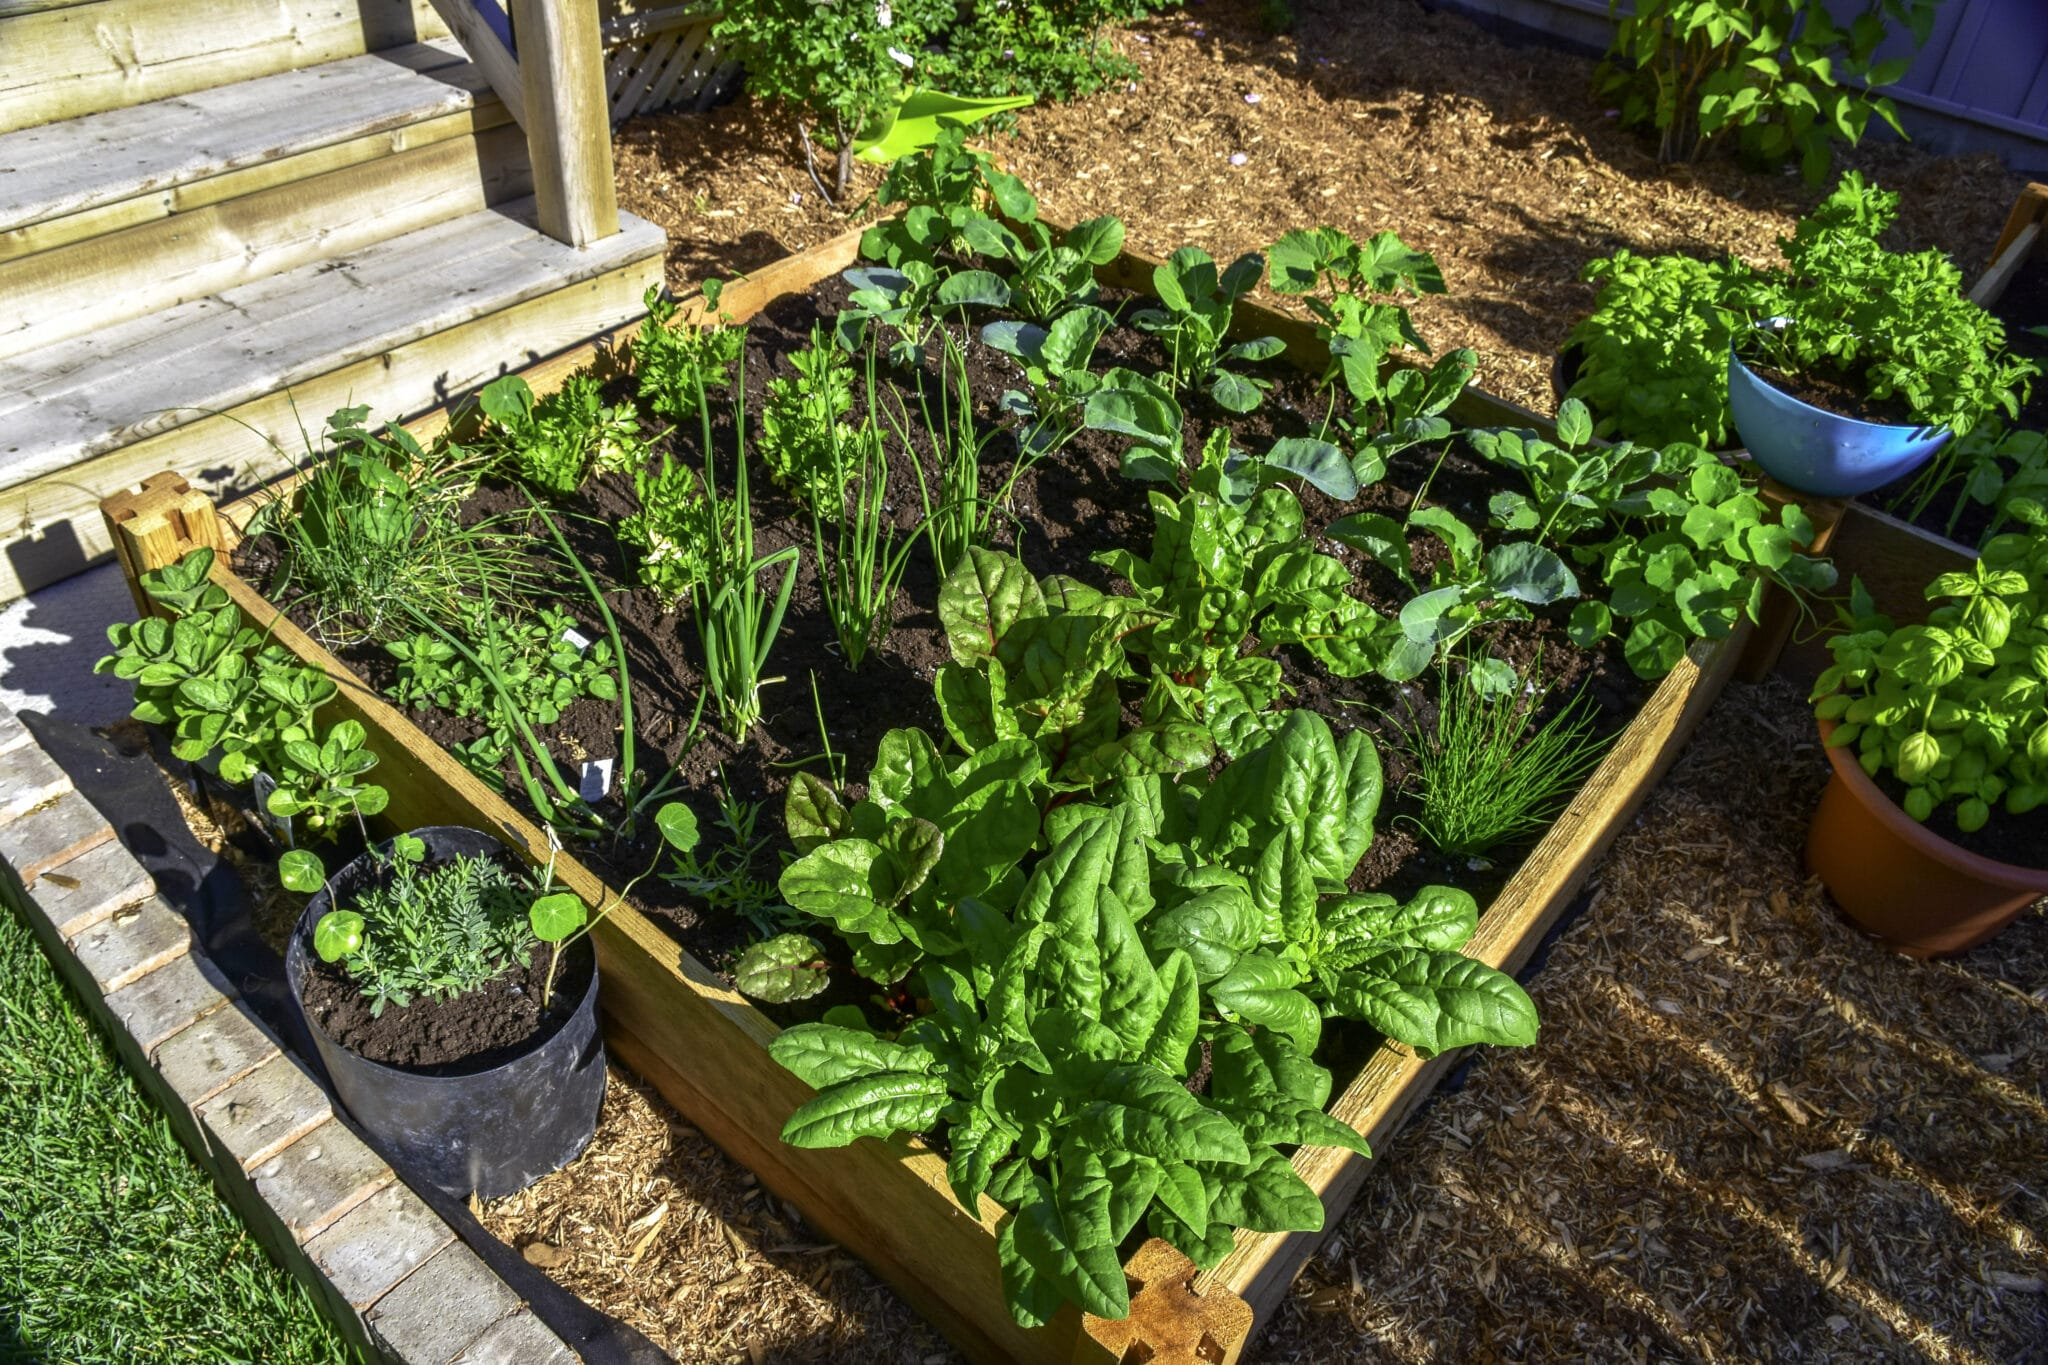 A 4 by 4 foot raised garden bed, with the plants growing close together to maximize space in the small garden.